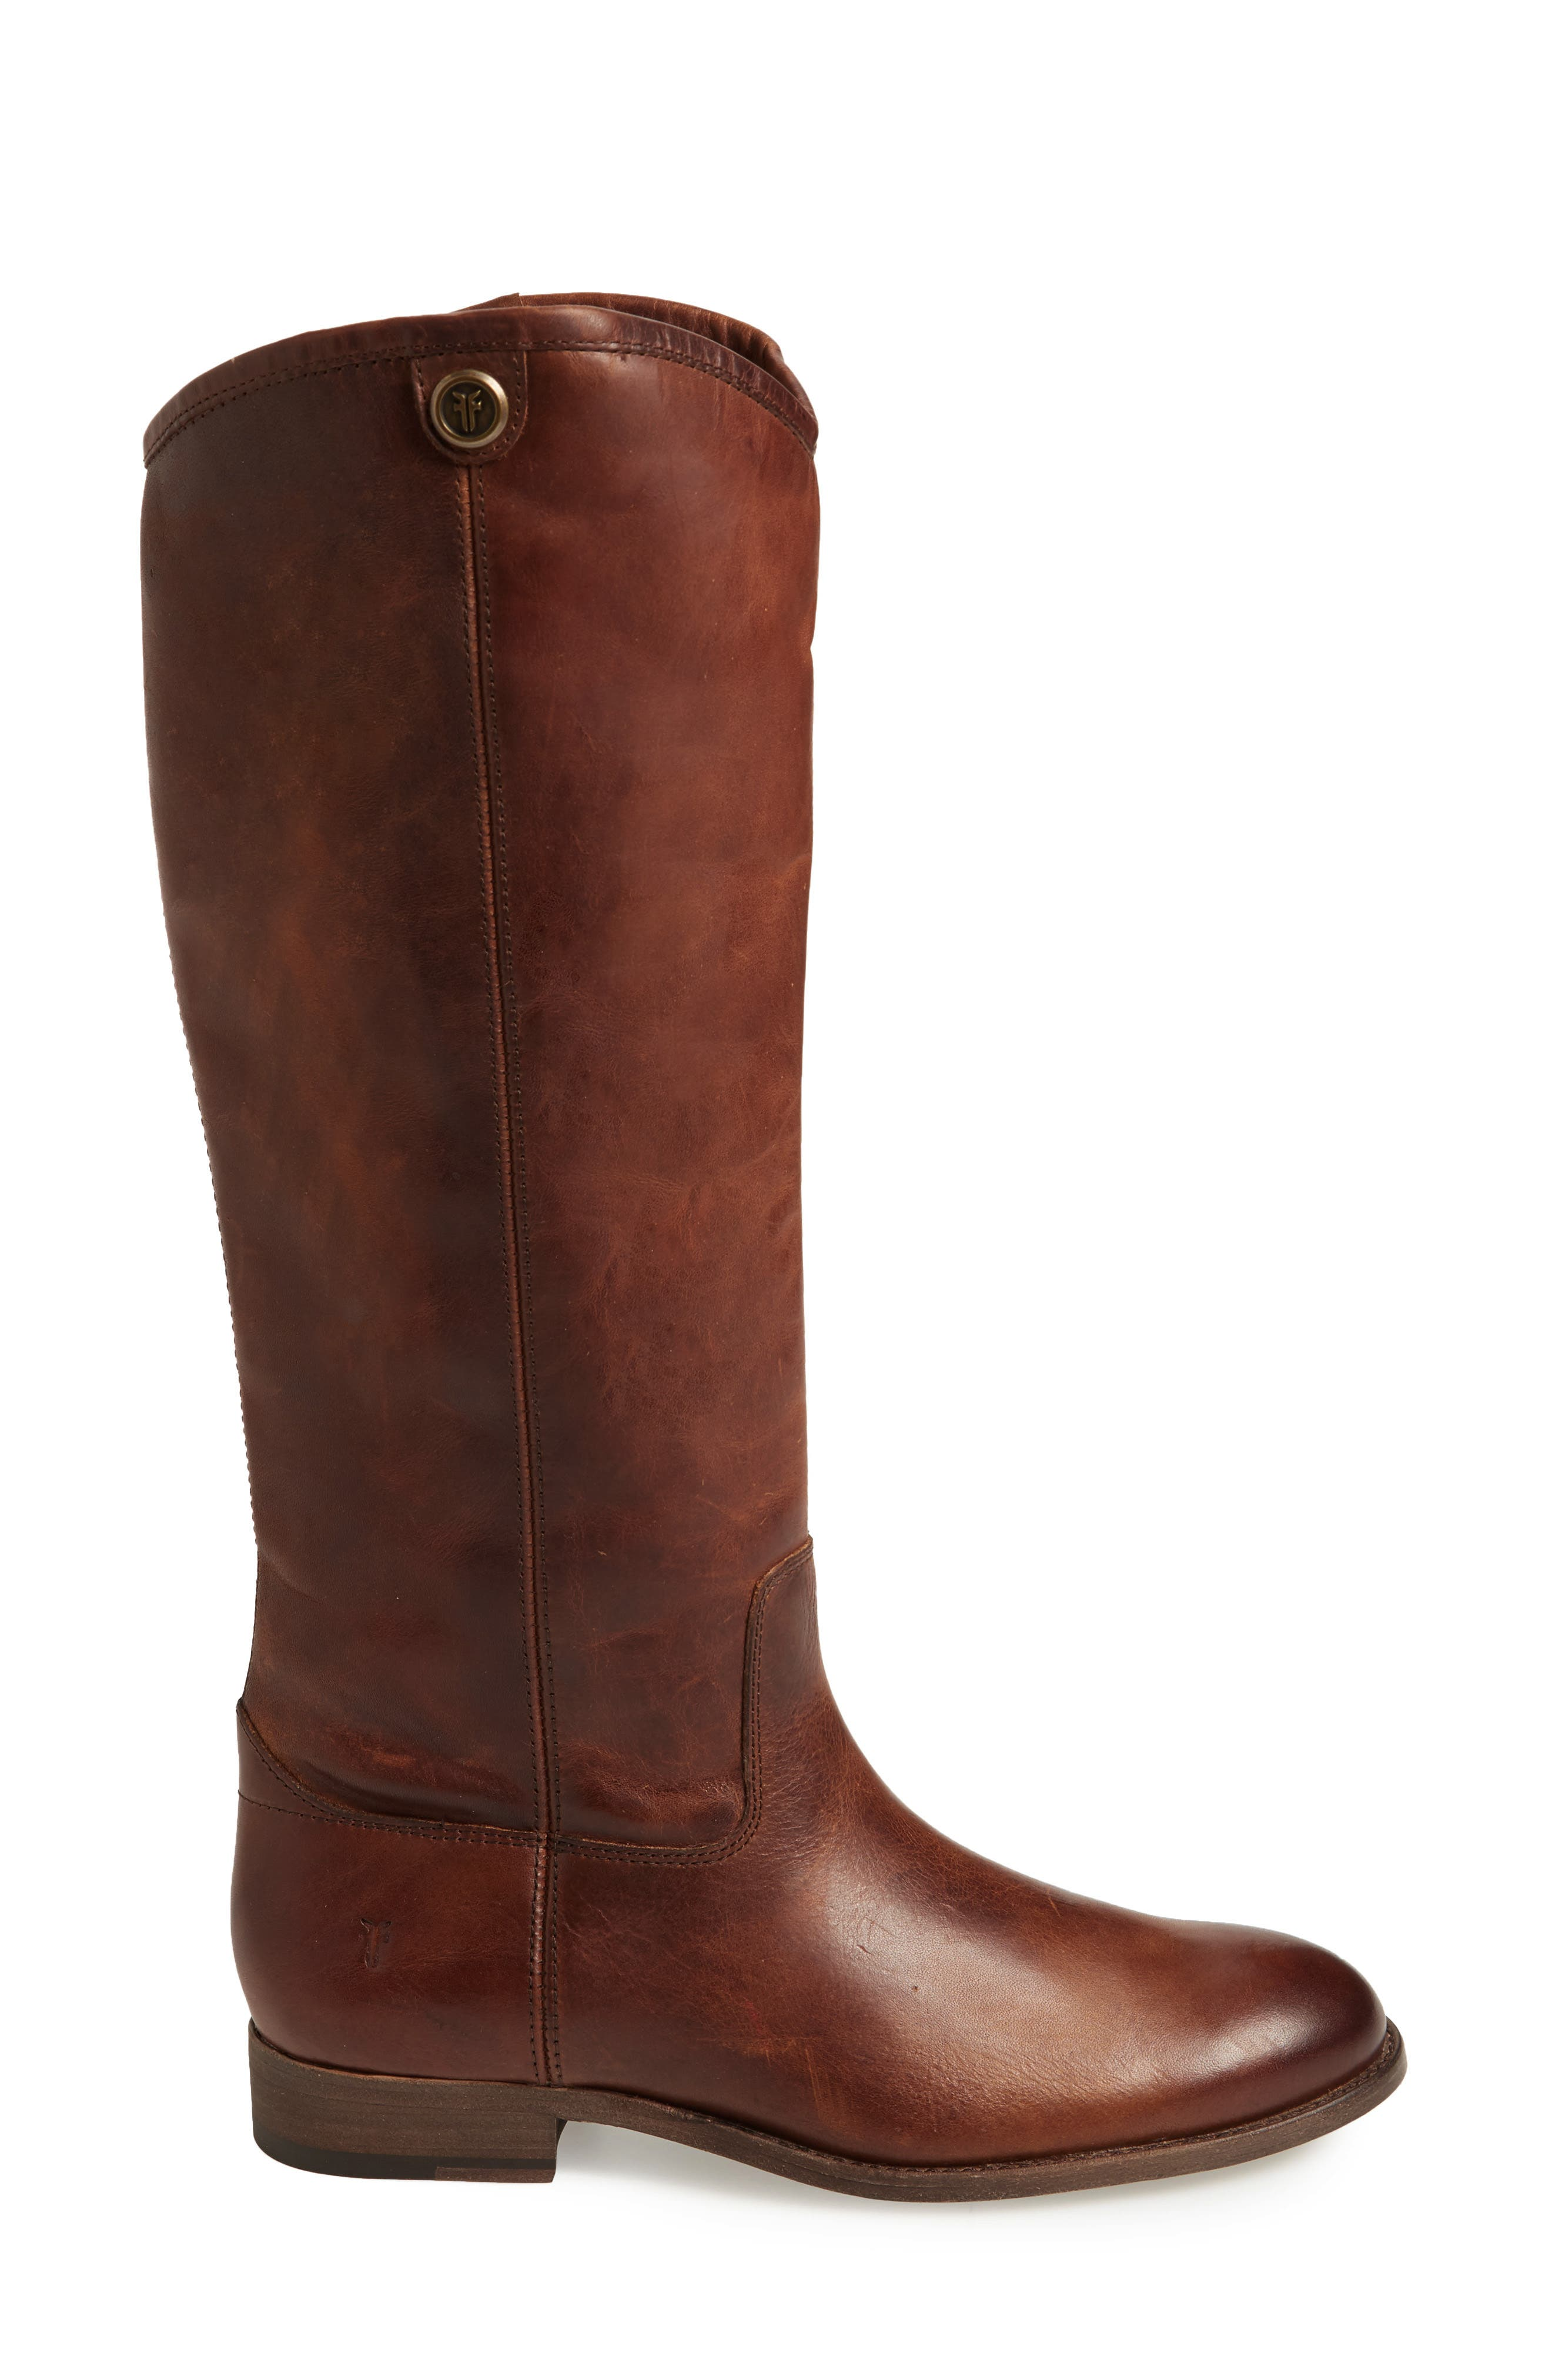 Alternate Image 3  - Frye Melissa Button 2 Knee High Boot (Women)